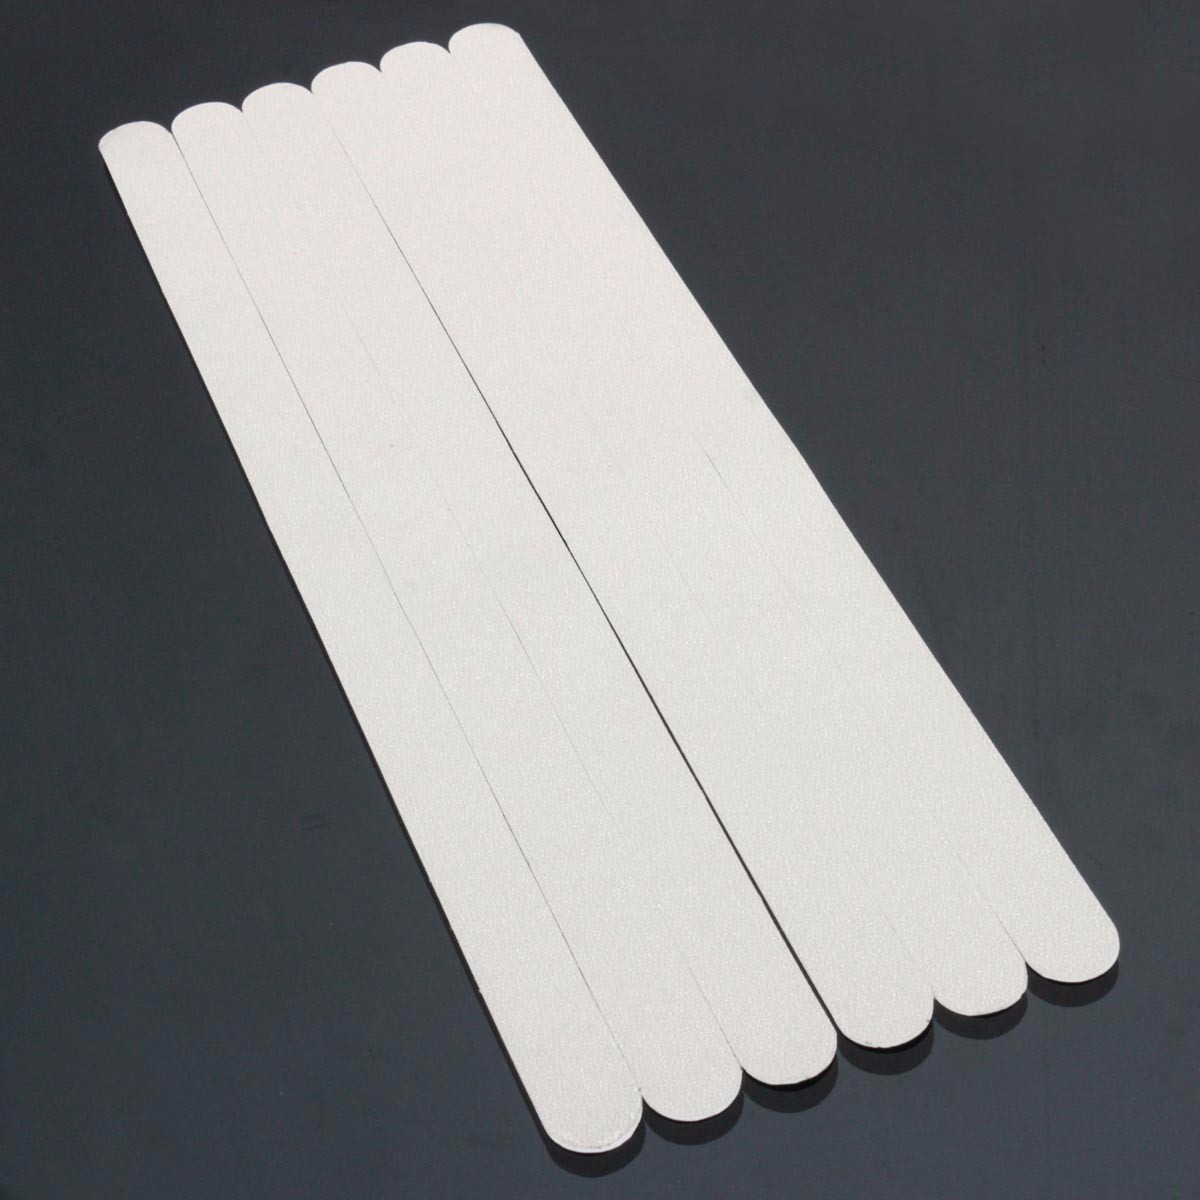 5X Anti-Slip Strips Bathroom Bath Shower Self-Adhesive Non-Slip Transparent Q